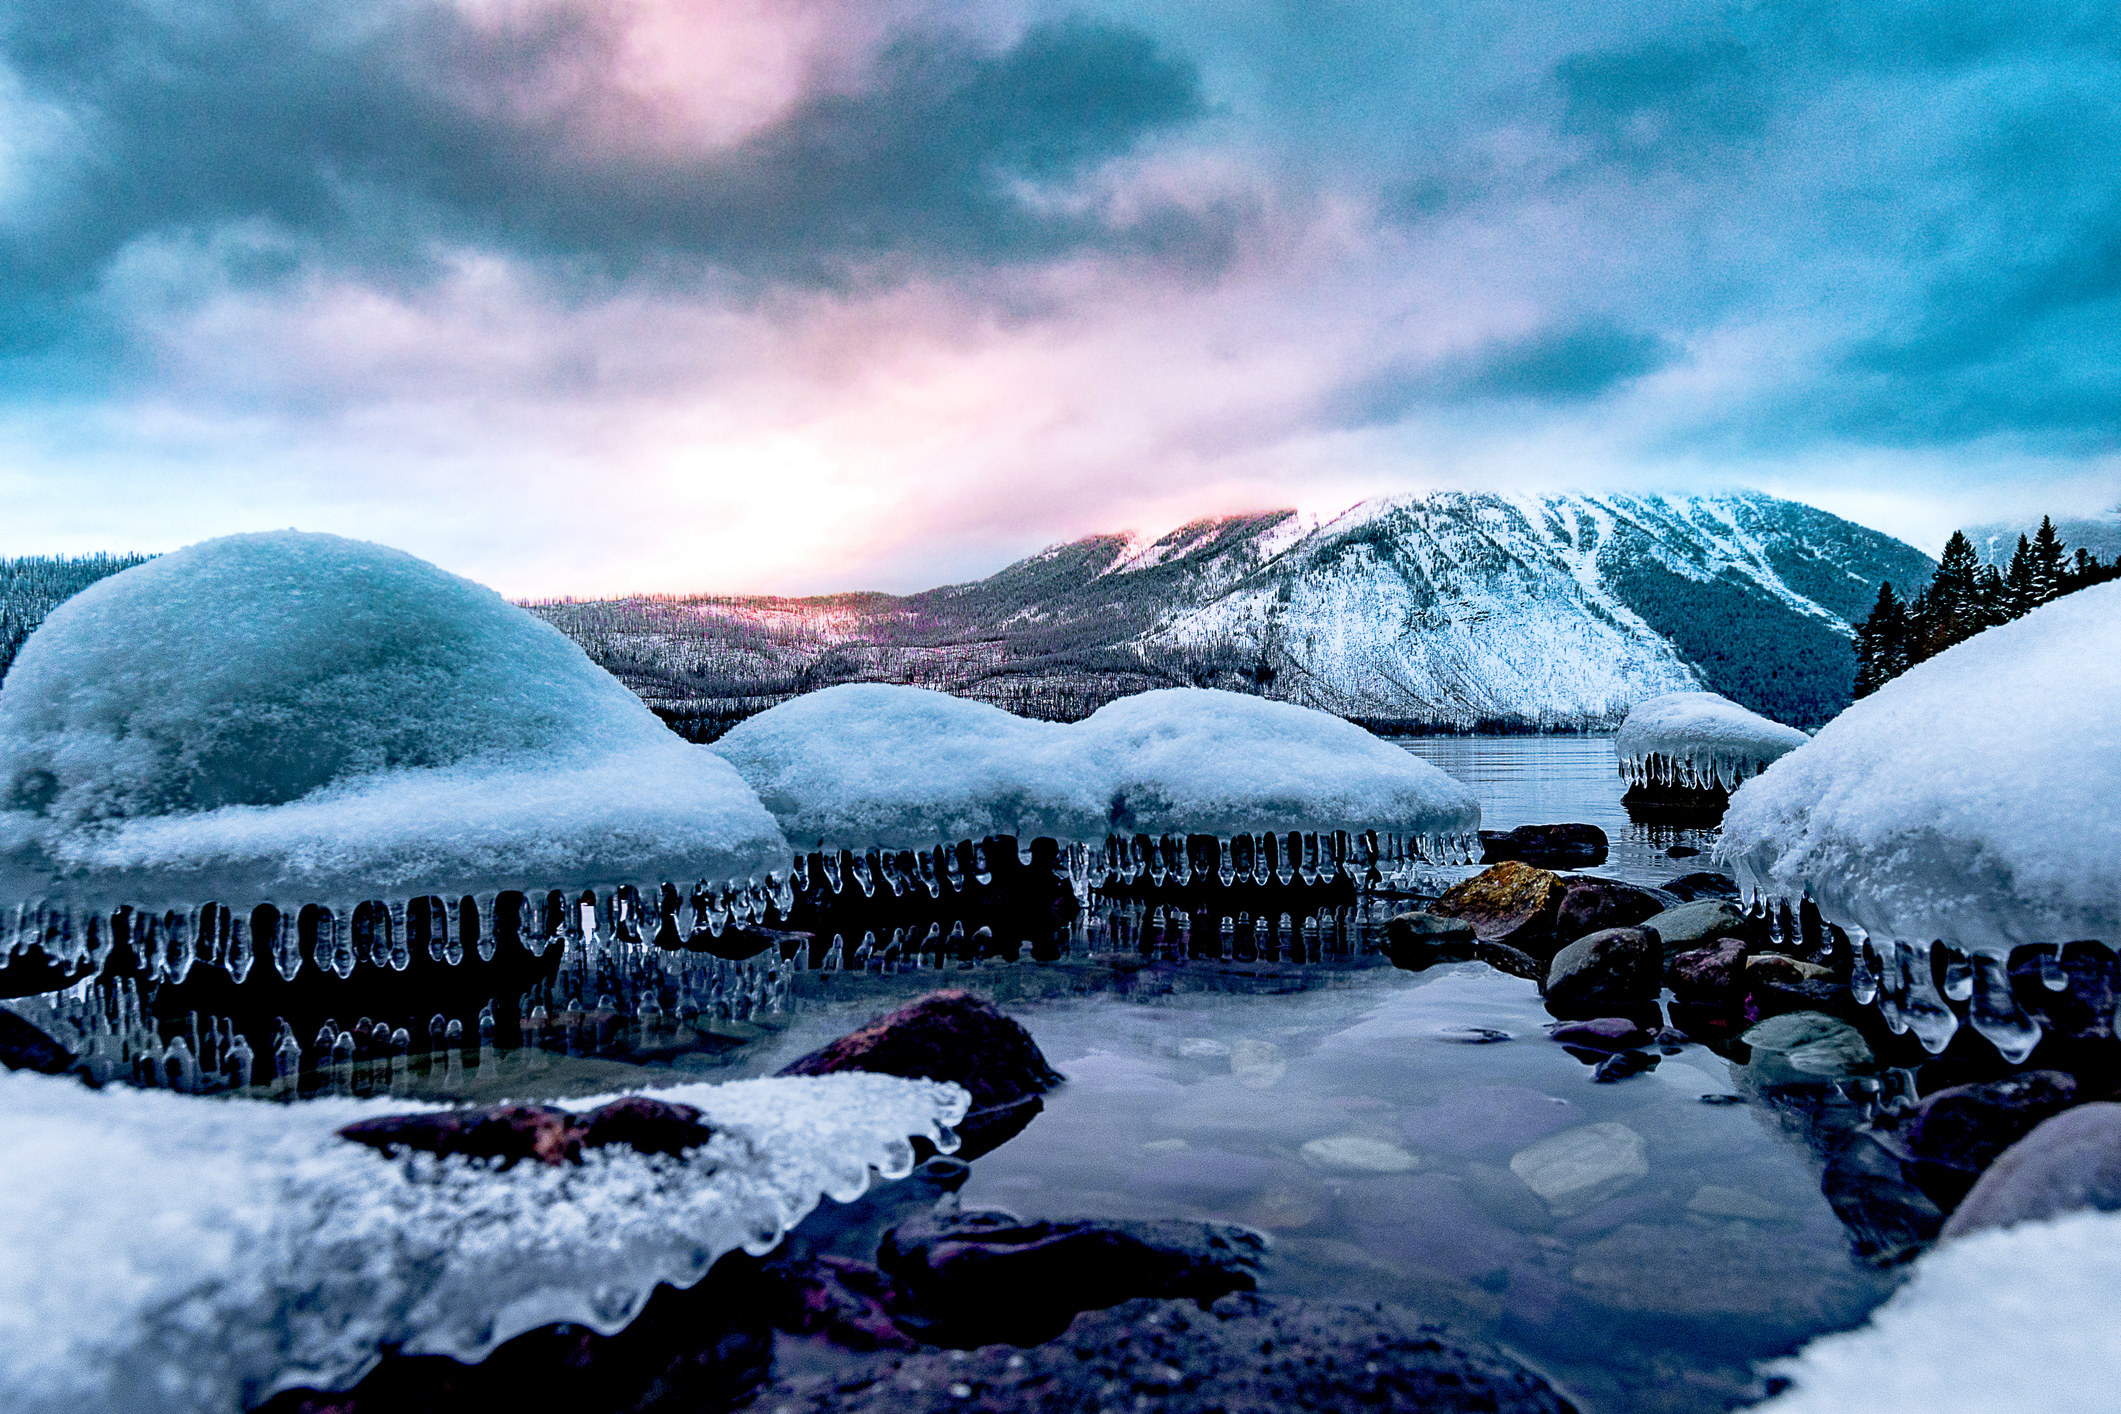 snow covered rocks on an icy lake